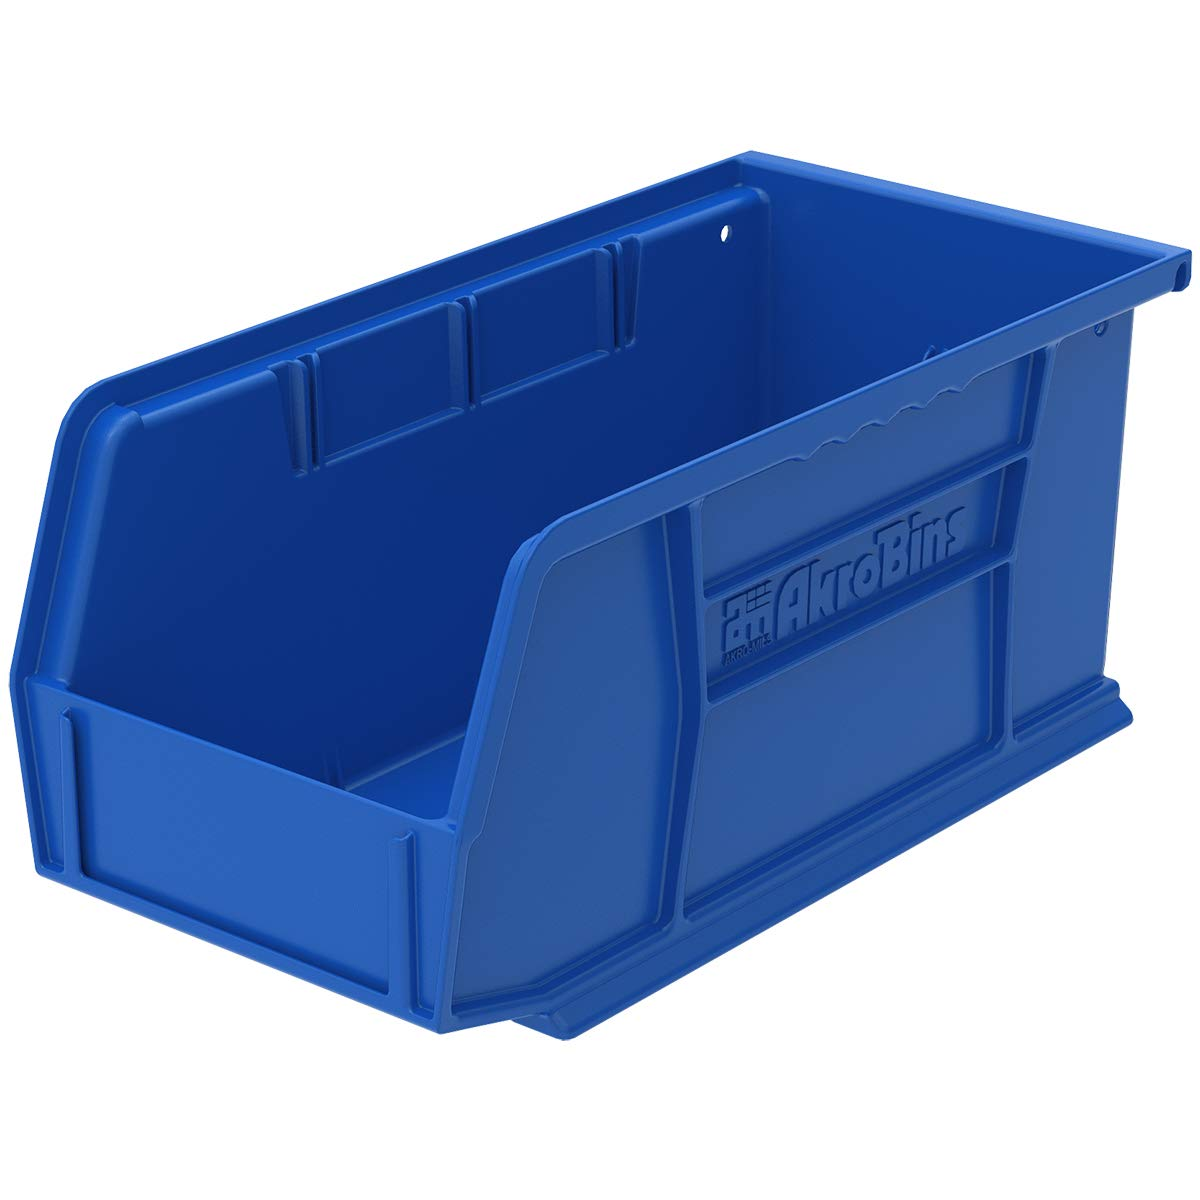 Akro-Mils 30230 Plastic Storage Stacking Hanging Akro Bin, 11-Inch by 5-Inch by 5-Inch, Blue, Case of 12 by Akro-Mils